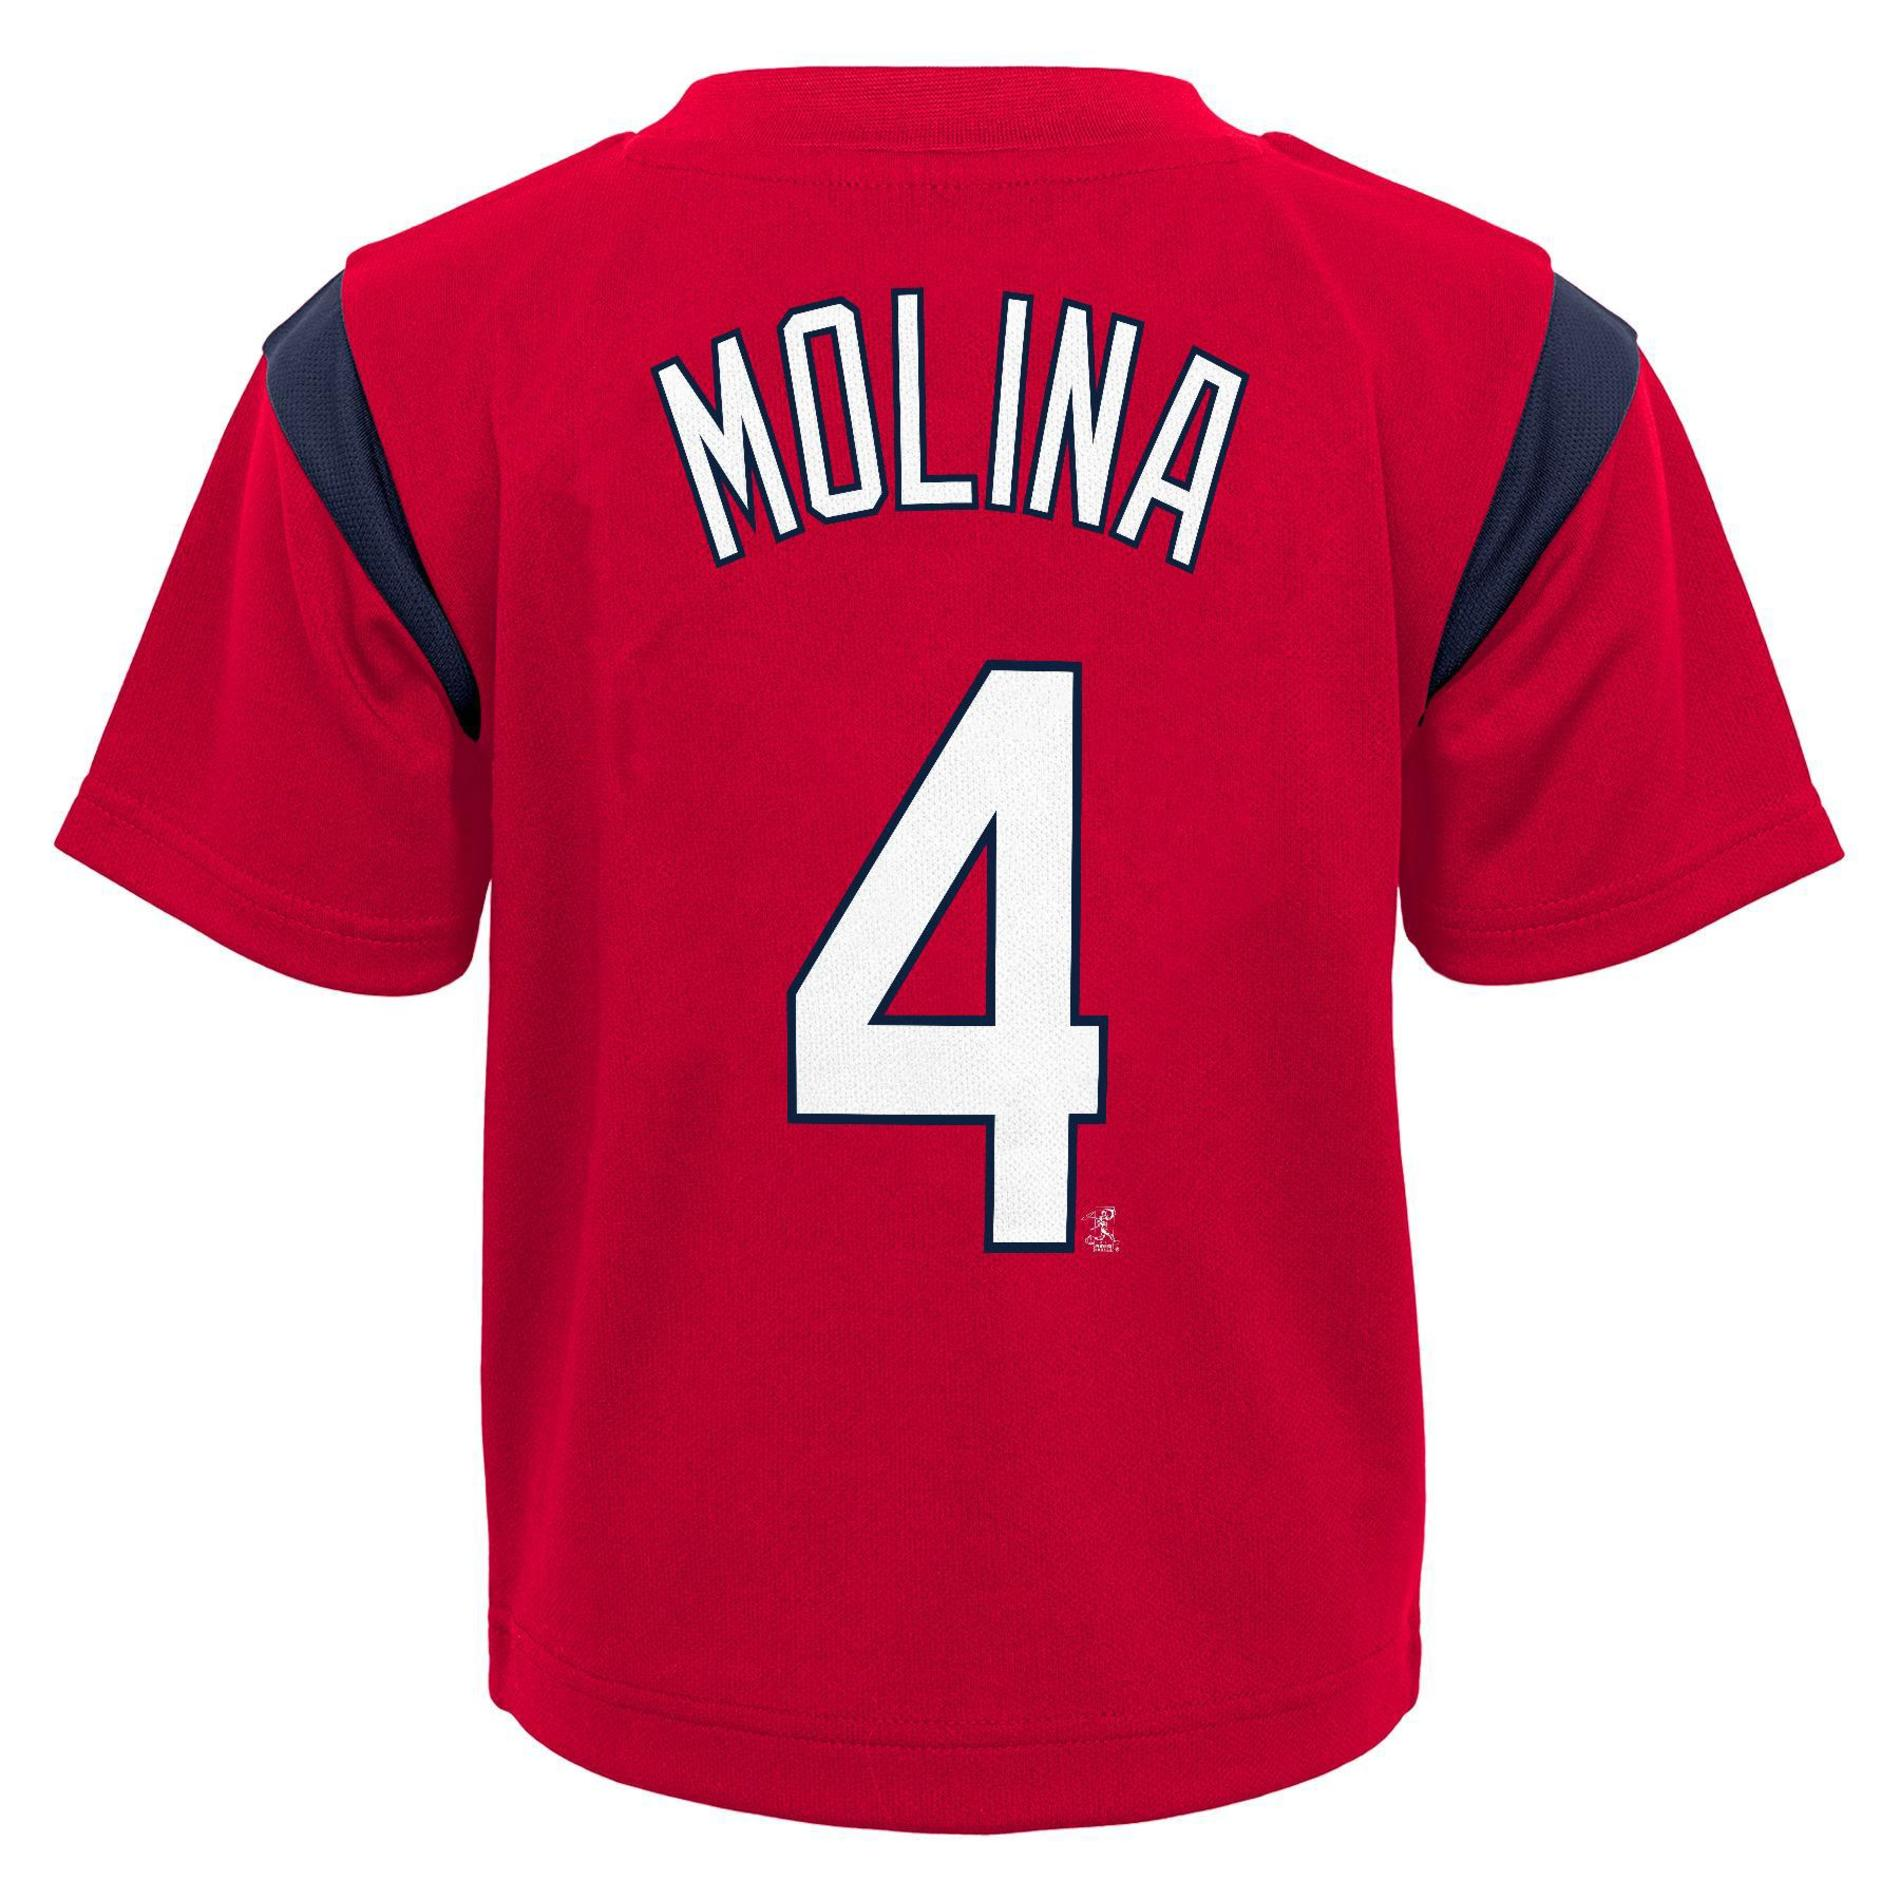 MLB Yadier Molina Boys' Graphic T-Shirt - St. Louis Cardinals, Size: Large